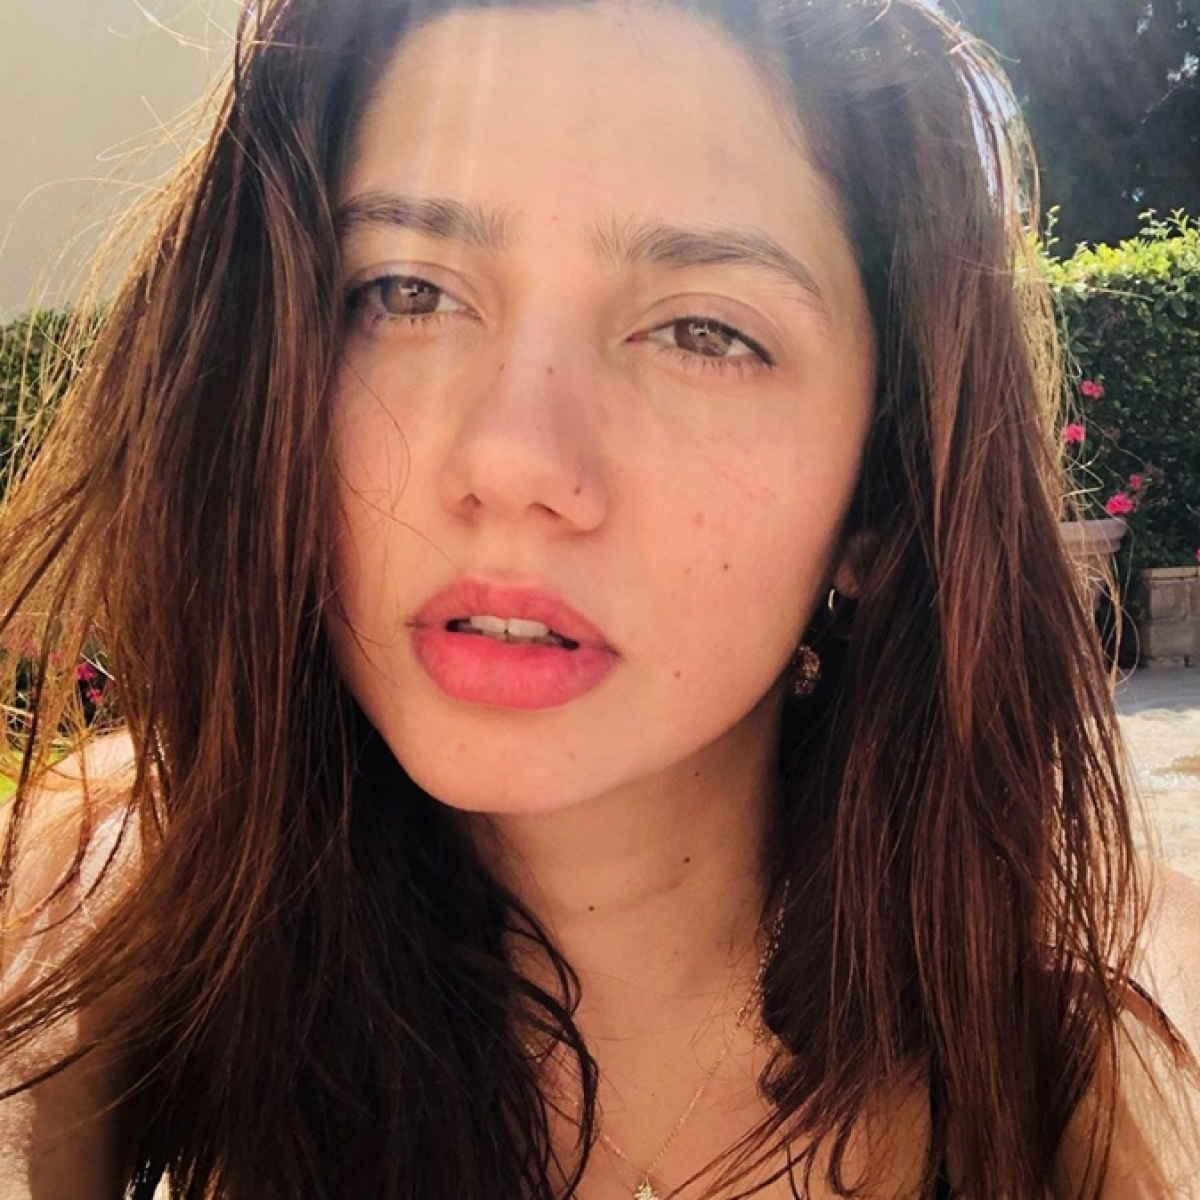 Heaven is burning and we silently weep: Pakistani actress Mahira Khan reacts to Article 370 scrapping